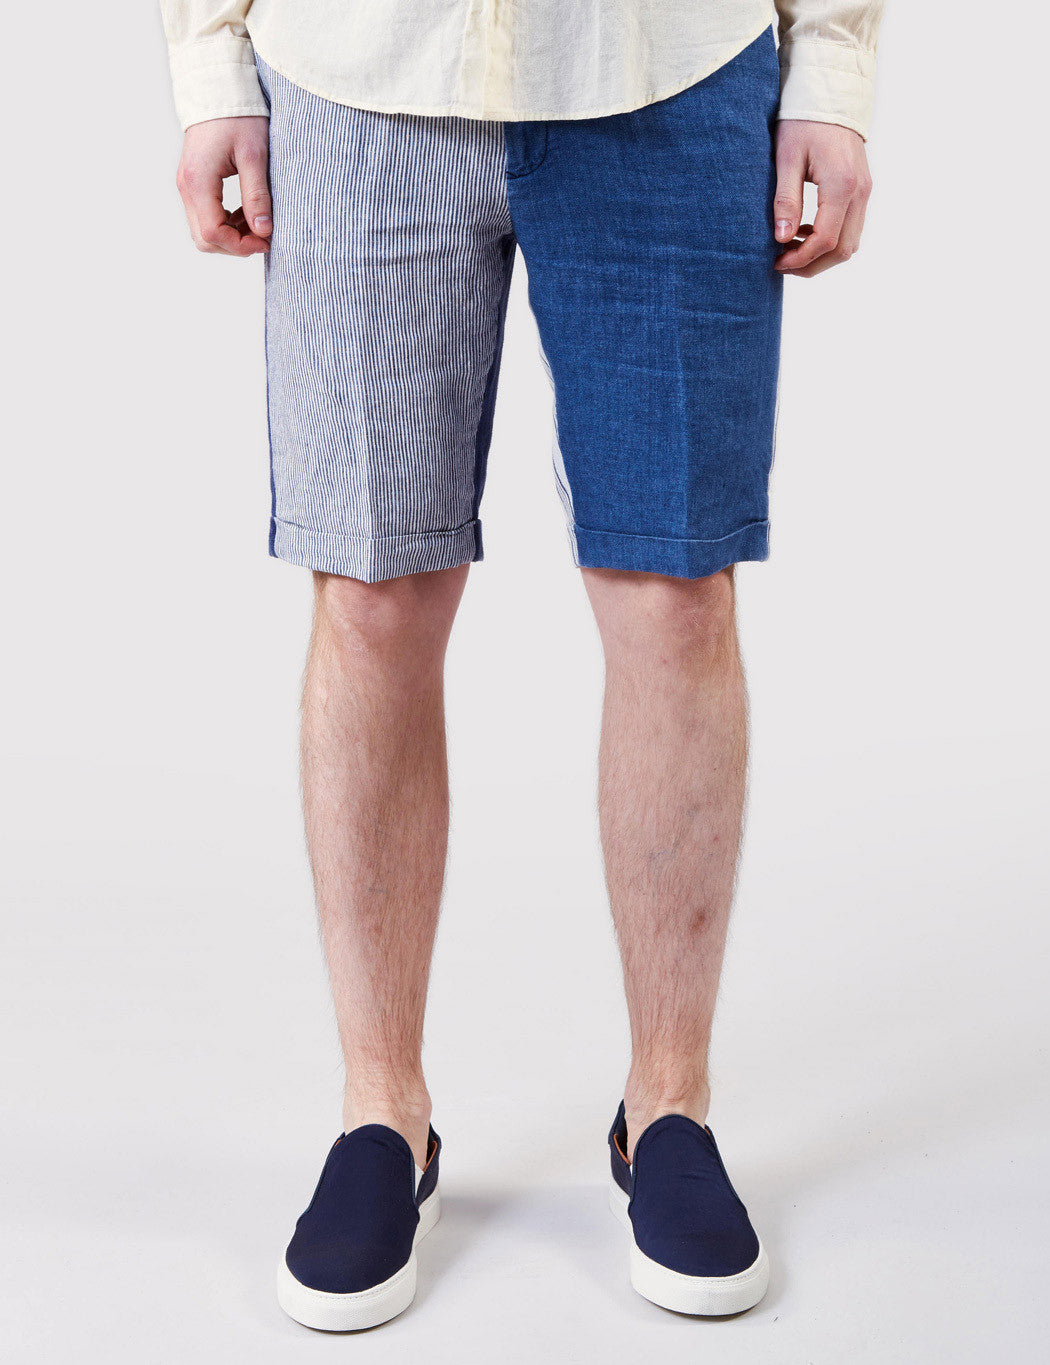 Gant Rugger Patched Shorts - Classic Blue